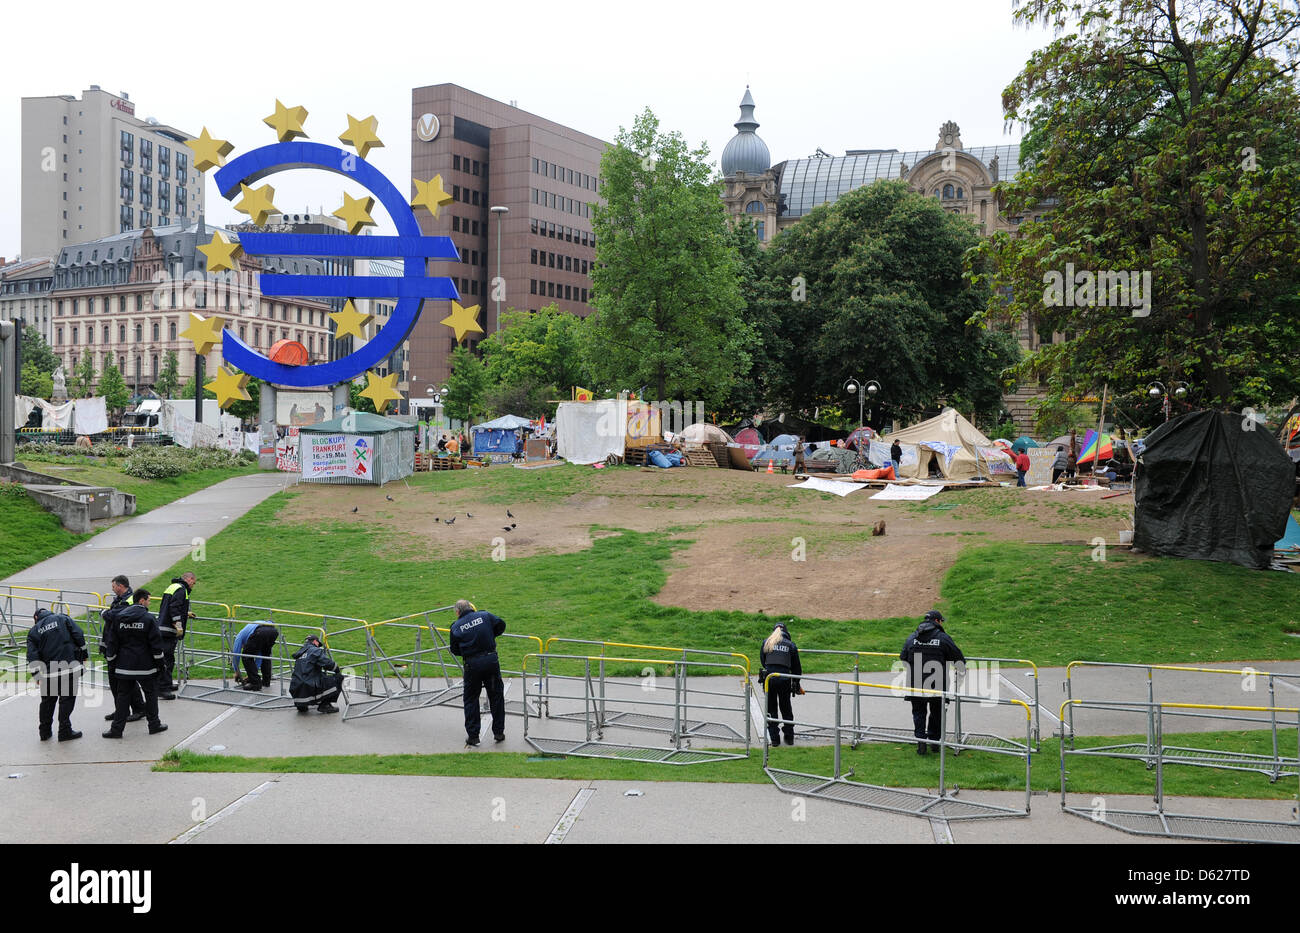 Police officers set up barriers at the Occupy camp in Frankfurt am Main, Germany, 15 May 2012. The police is preparing - Stock Image